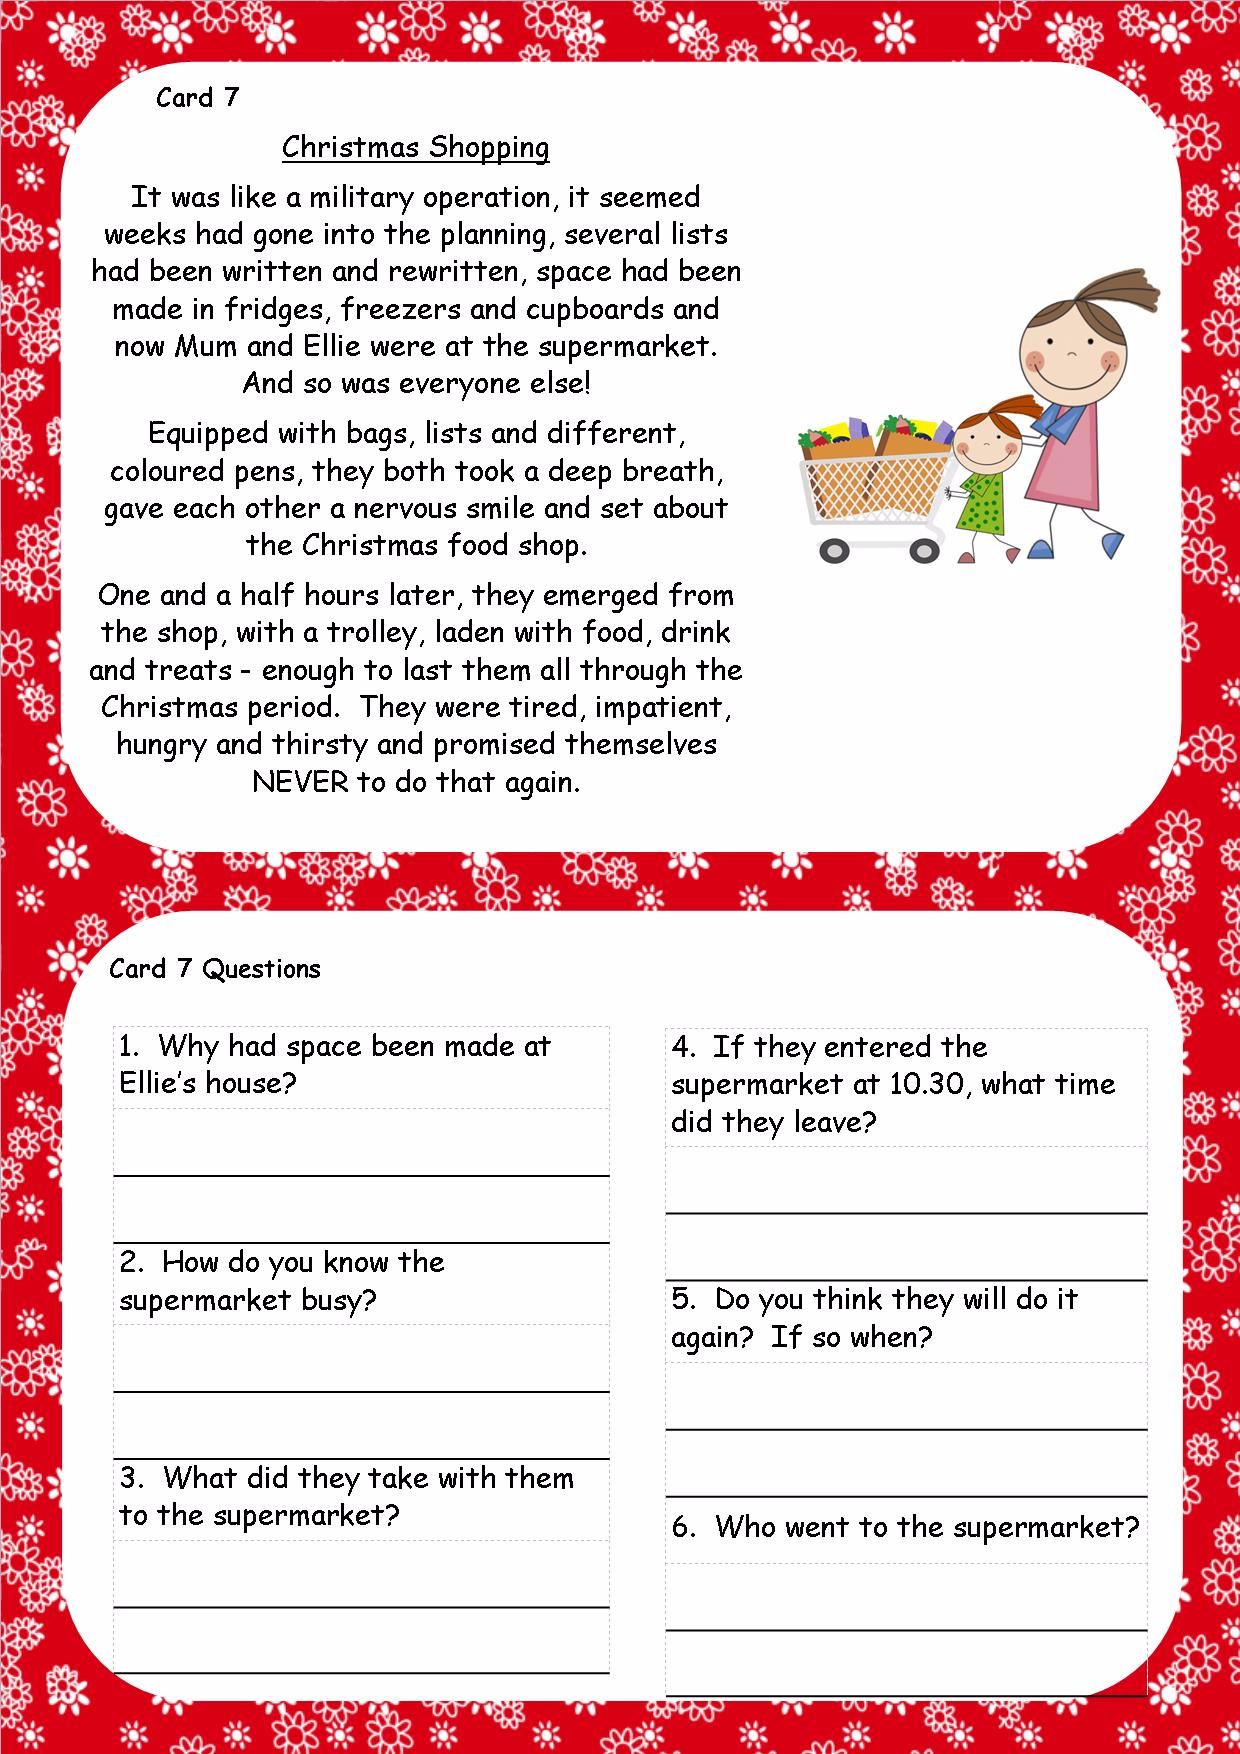 ks2 christmas reading comprehension cards7